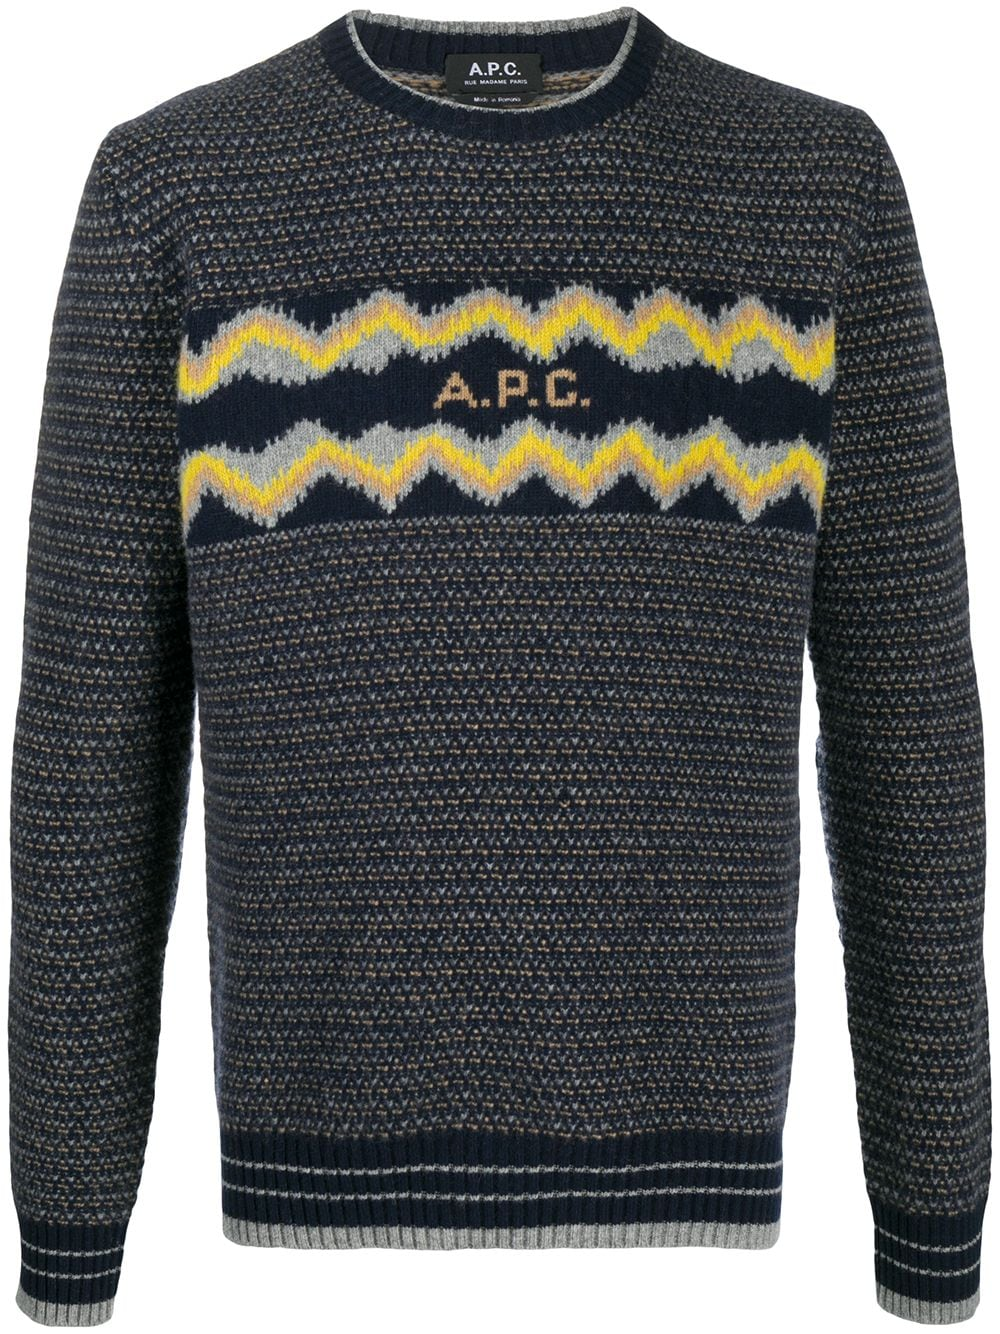 Image 1 of A.P.C. intarsia logo wool jumper